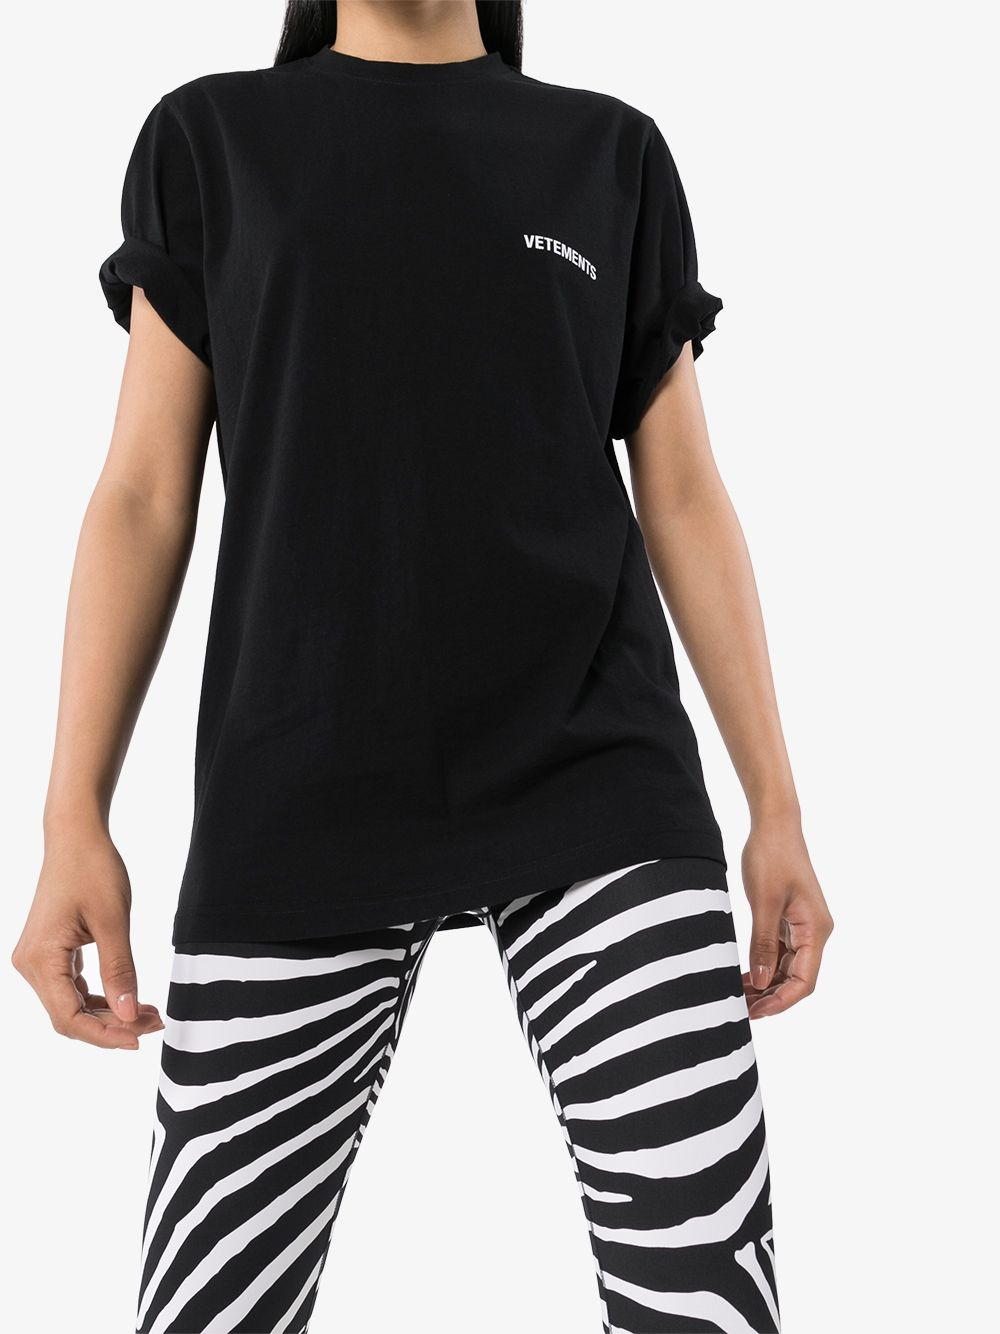 Vetements oversized logo-print T-shirt black